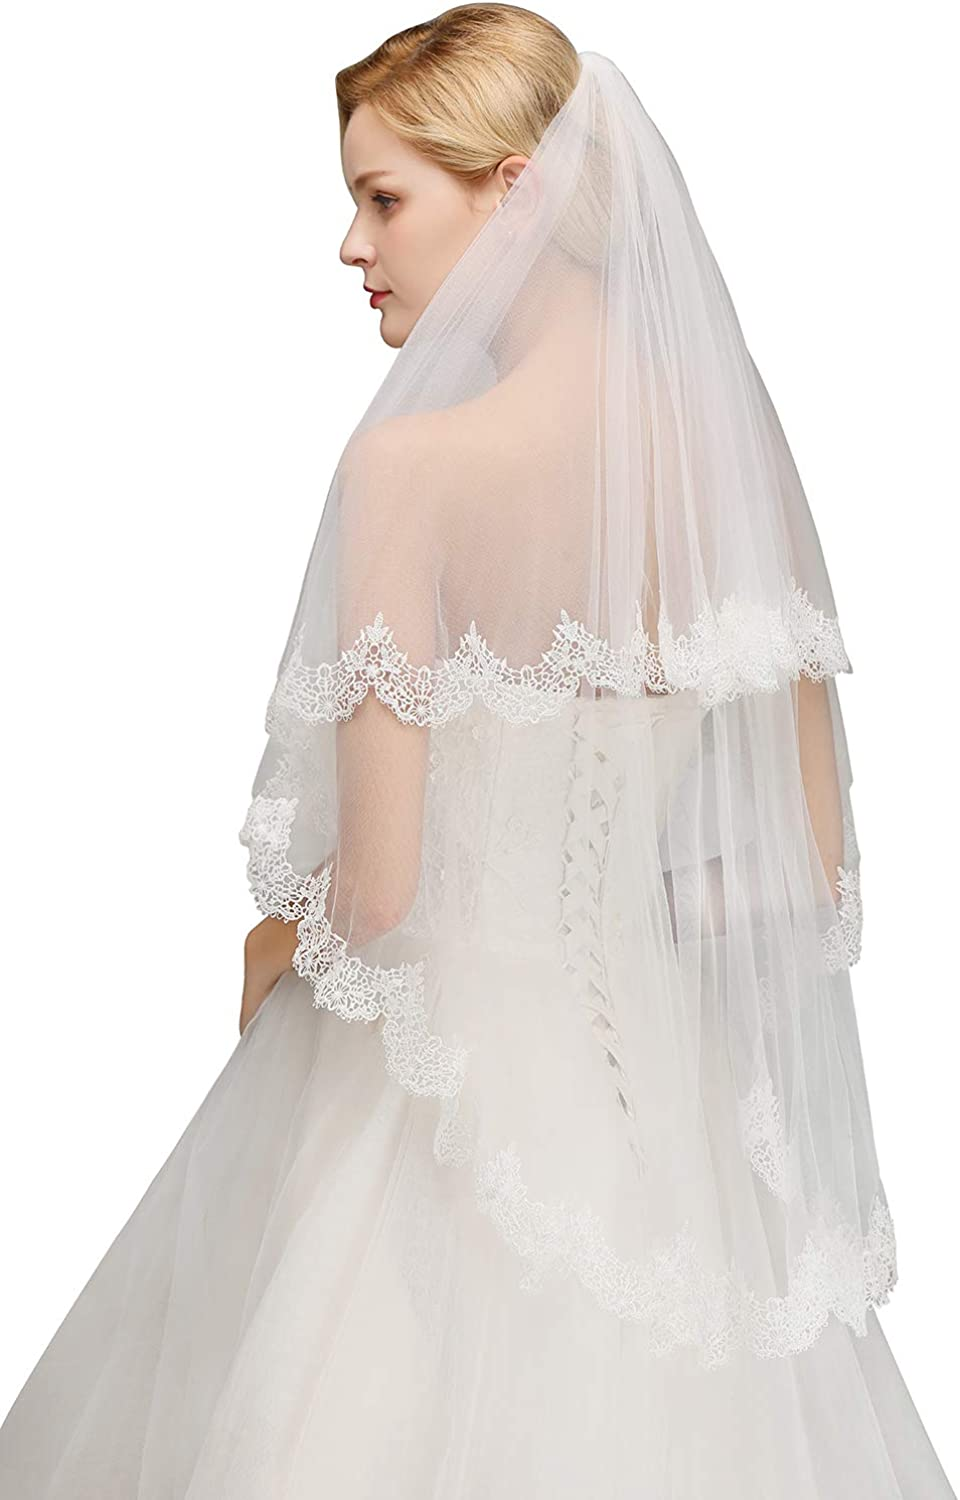 Women's Short Wedding Bridal Veil 2 Tier Tulle Sheer Lace with Comb